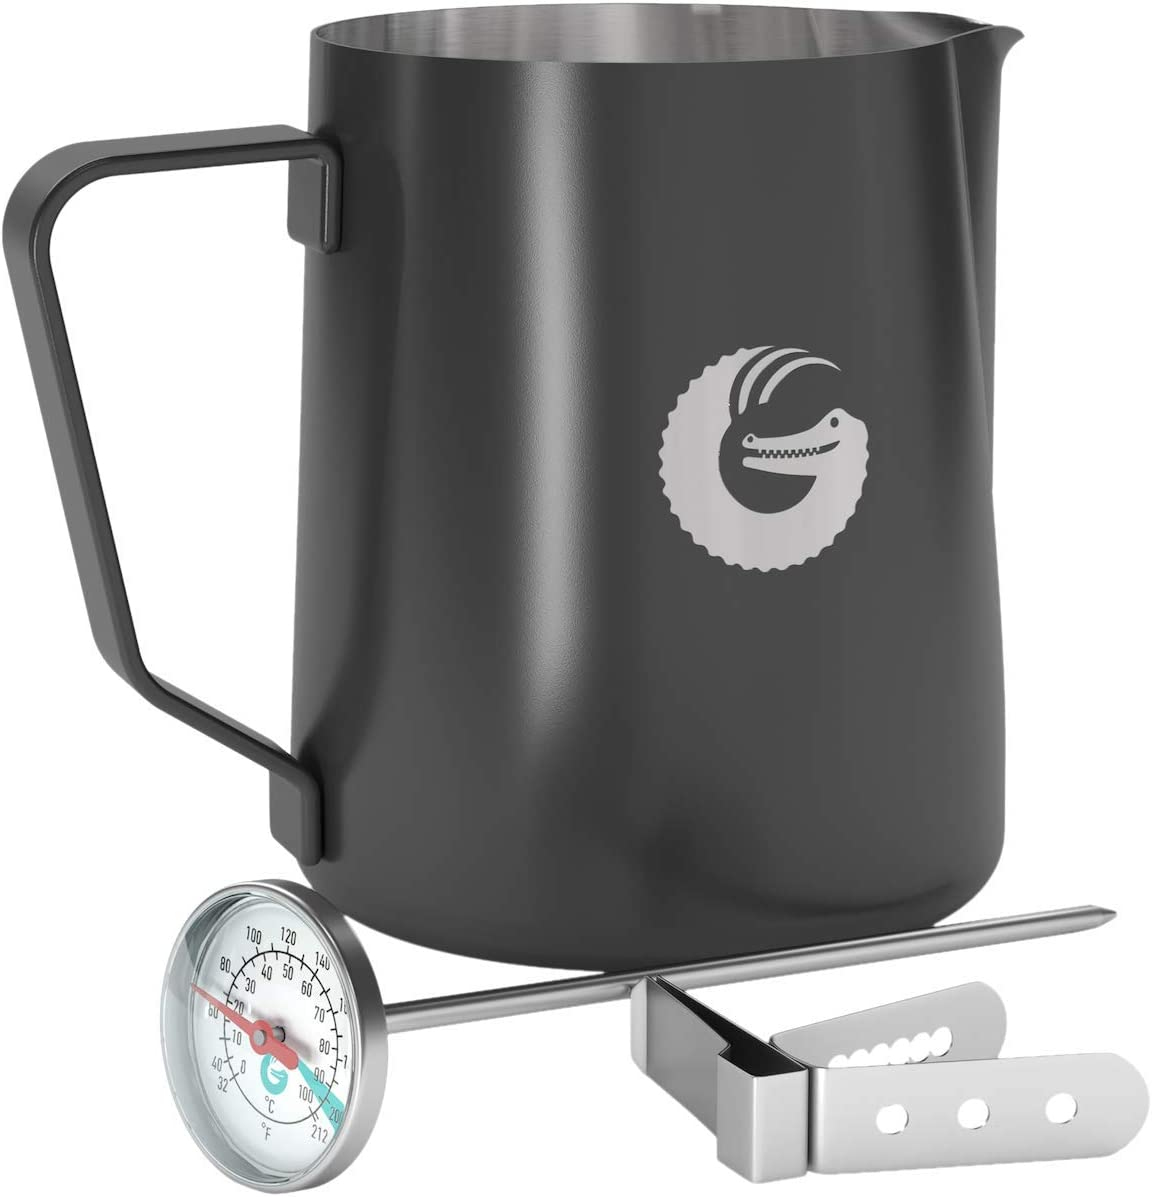 Coffee Gator Milk Frothing Pitcher - Coated Stainless Steel Milk Steamer Jug with Thermometer and Mounting Clip - Barista-Standard Latte Art - 18.5 Ounce 61xcZzEXe8L